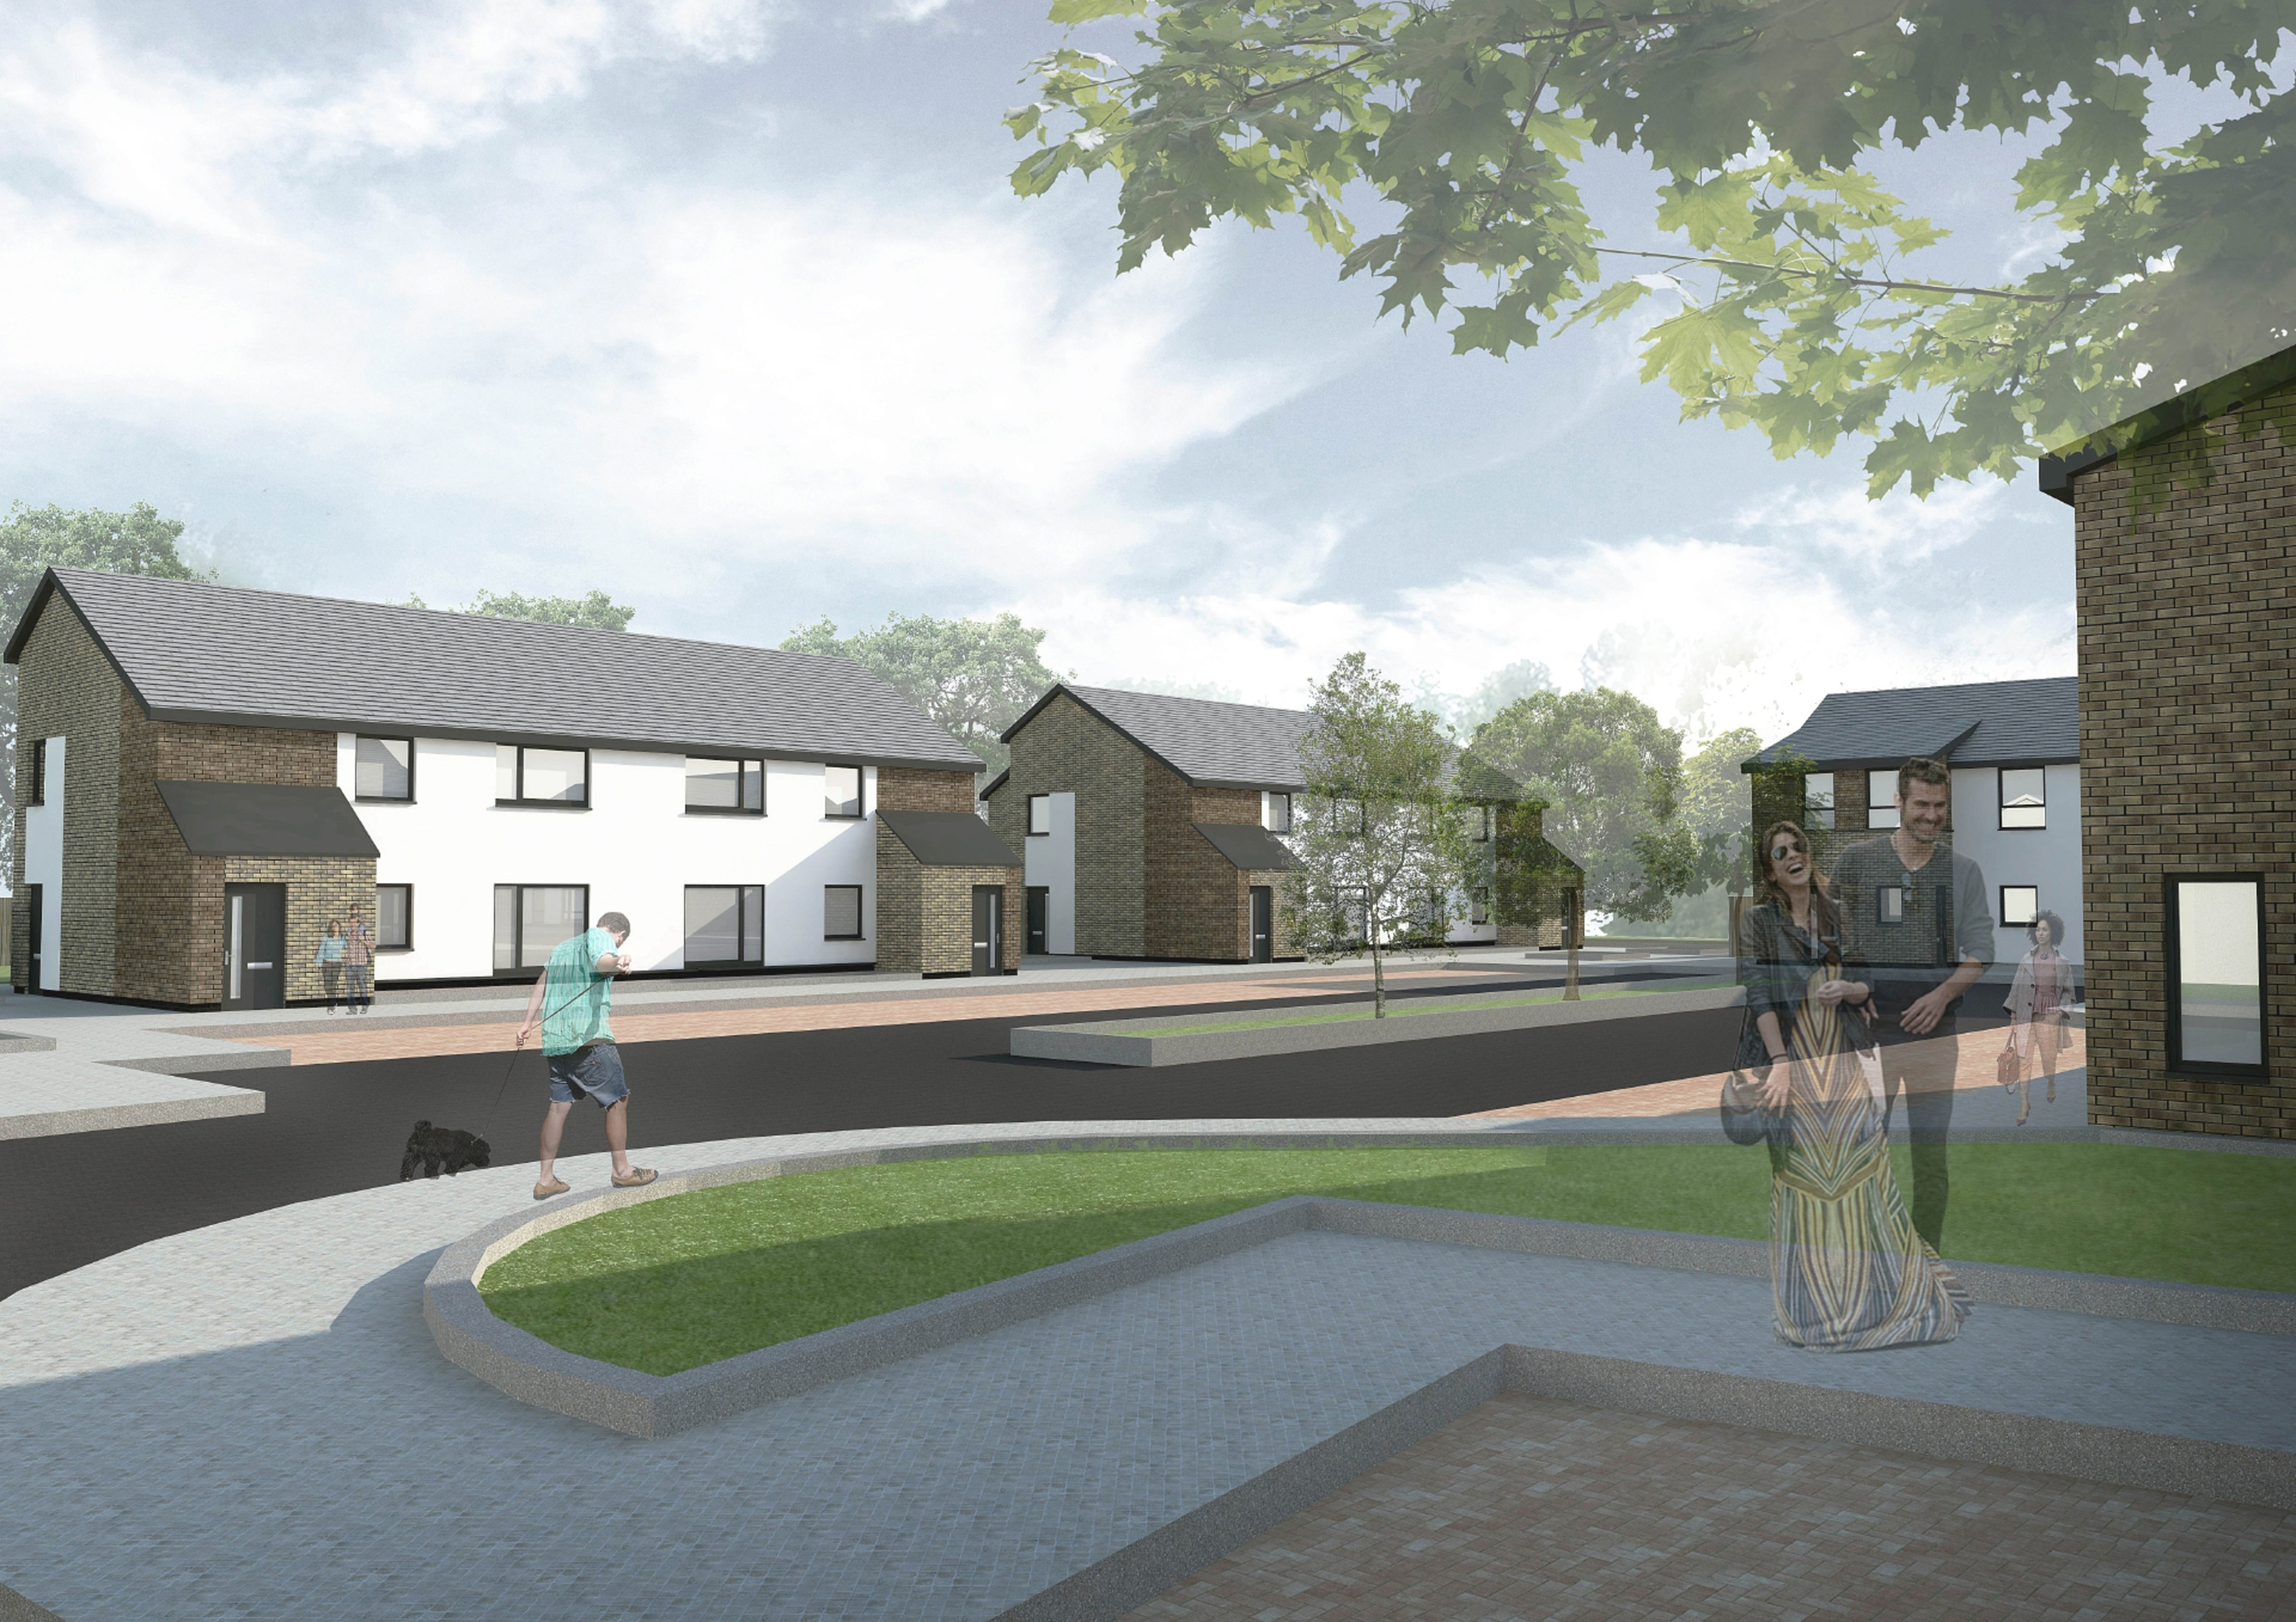 An image of the the development at Birch Avenue, Scone.